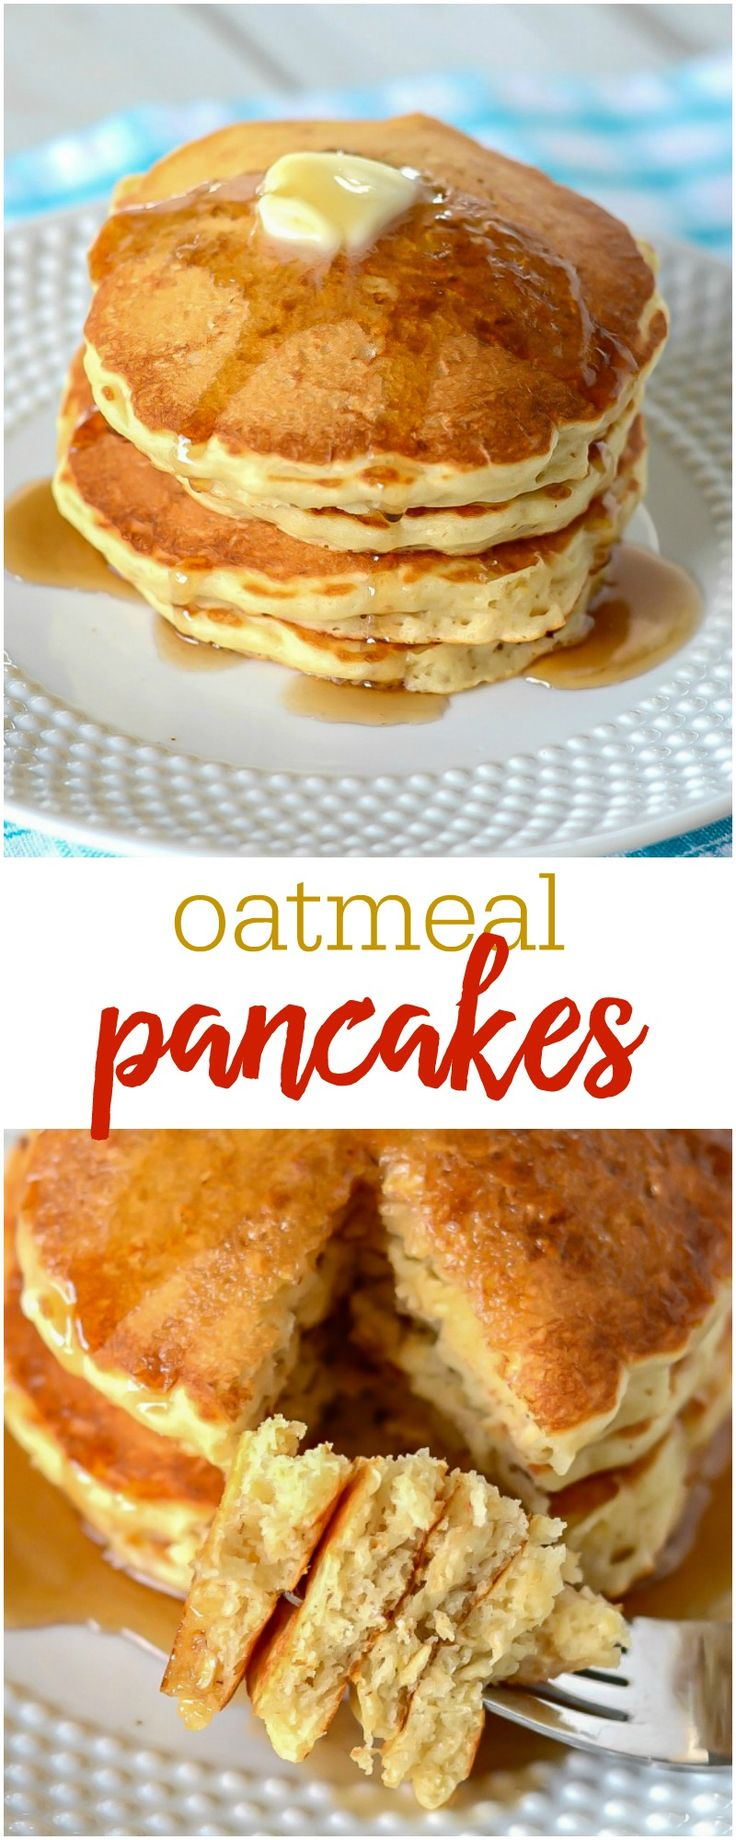 Delicious Homemade Oatmeal Pancakes - this simple recipe is one the whole family will enjoy for breakfast!